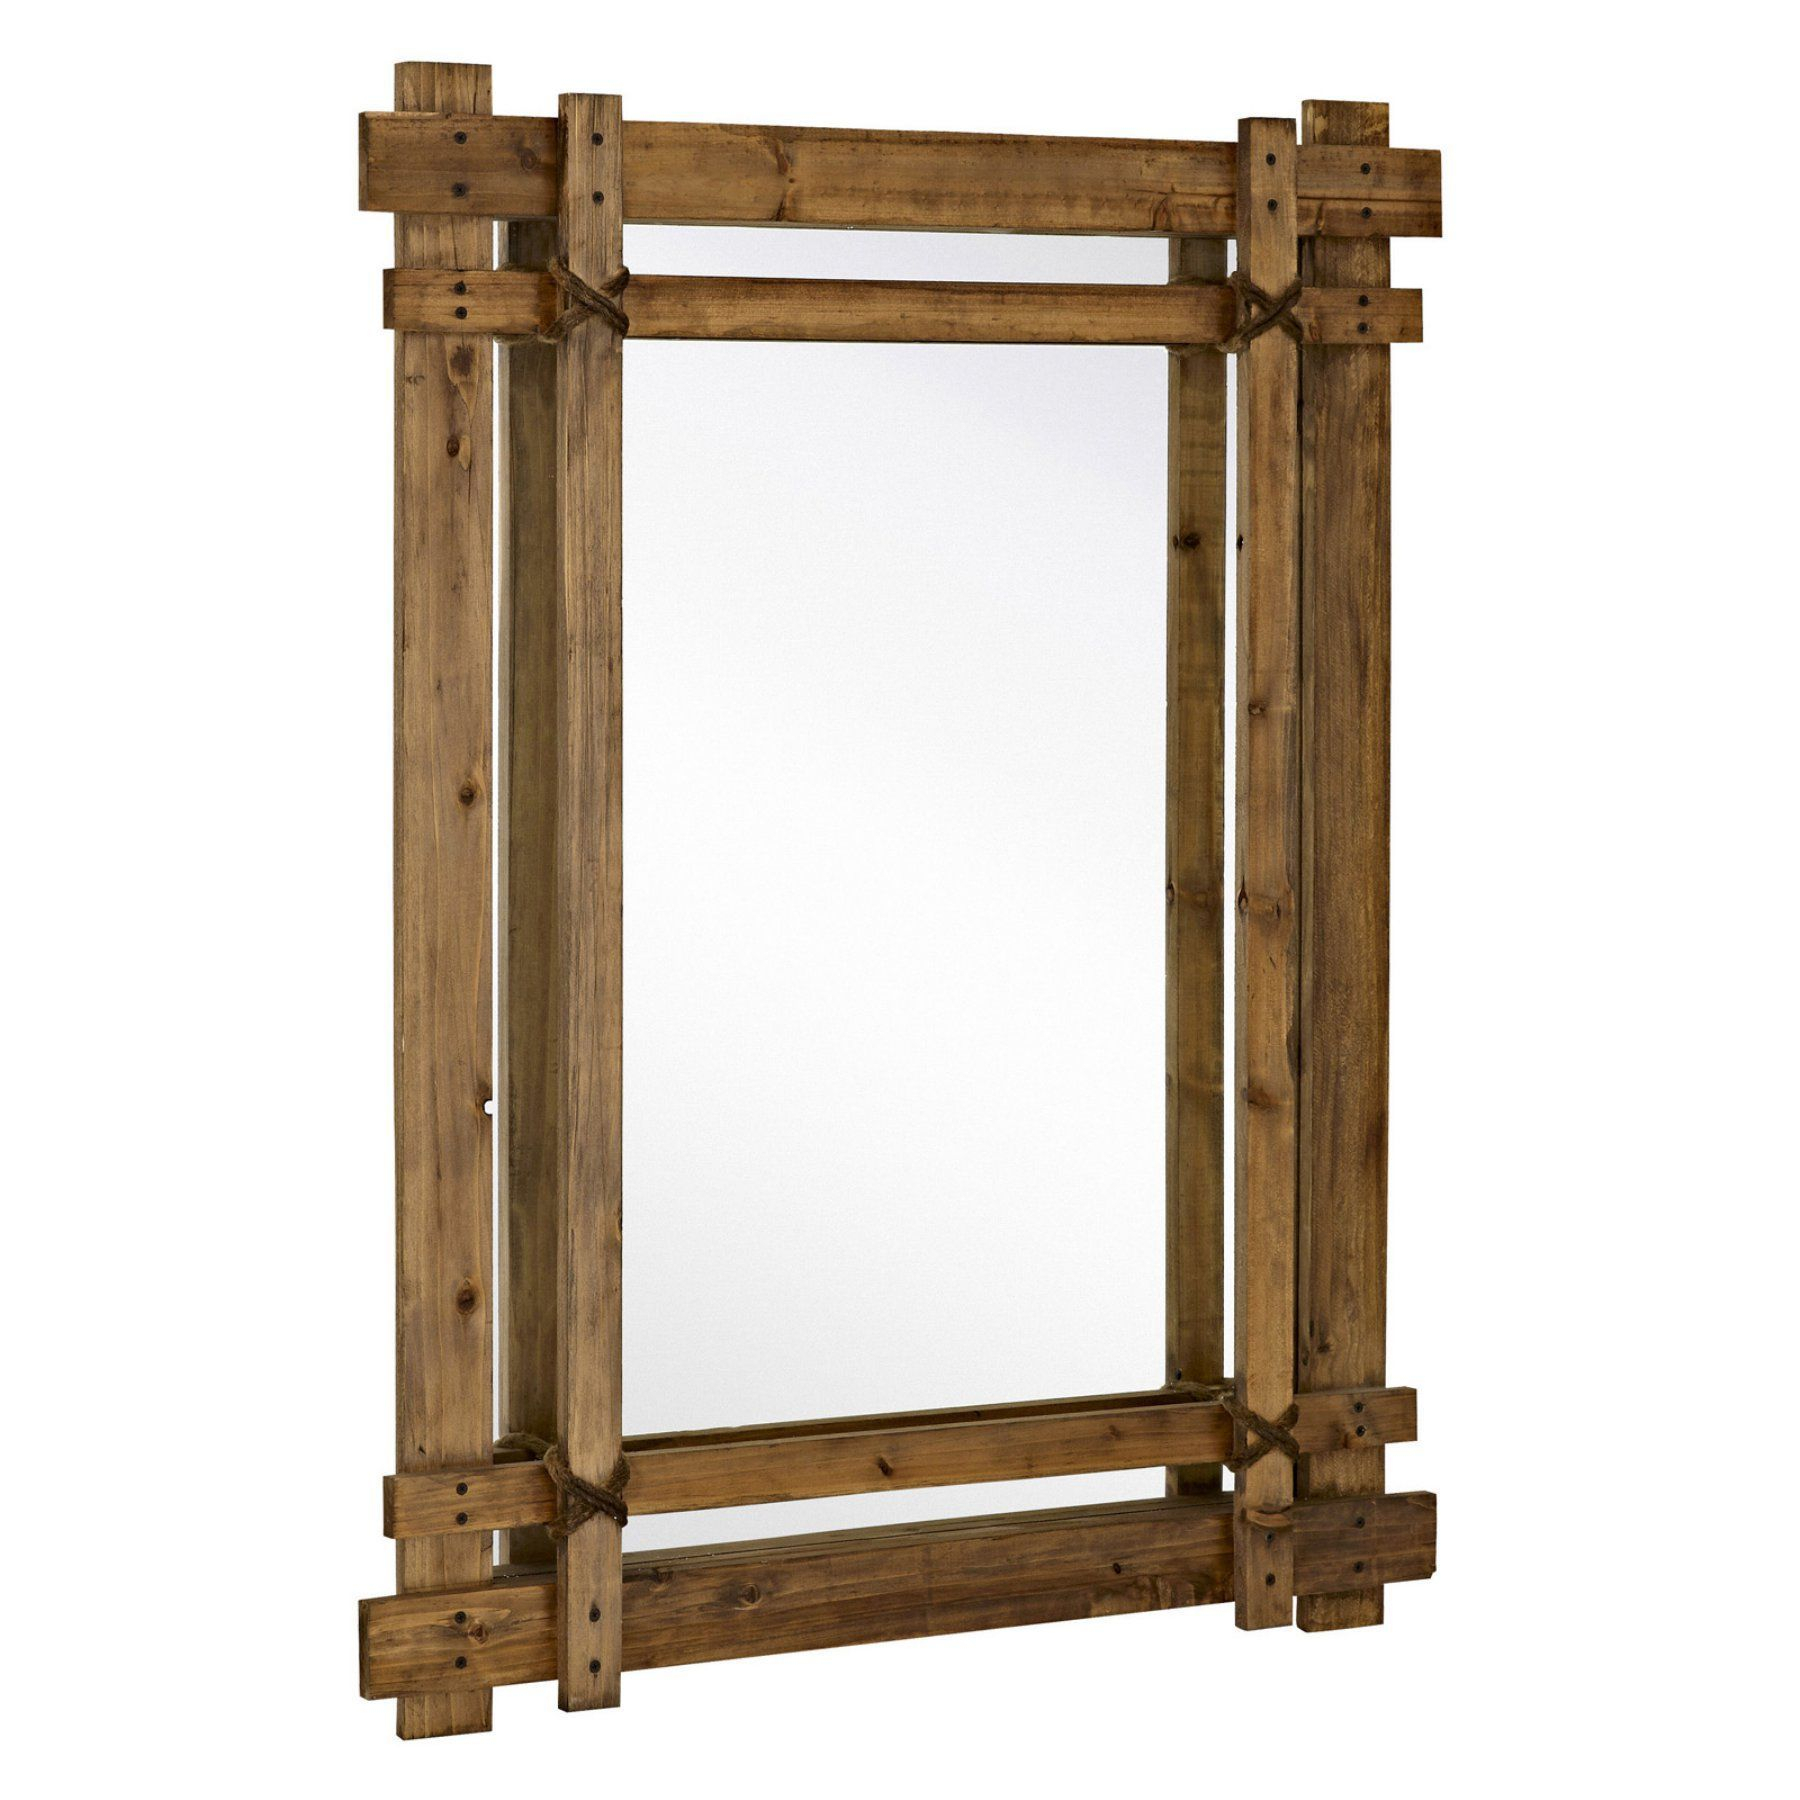 Majestic Rugged Accent Mirror – 2271 P | Products | Mirror In Traditional/coastal Accent Mirrors (View 11 of 20)